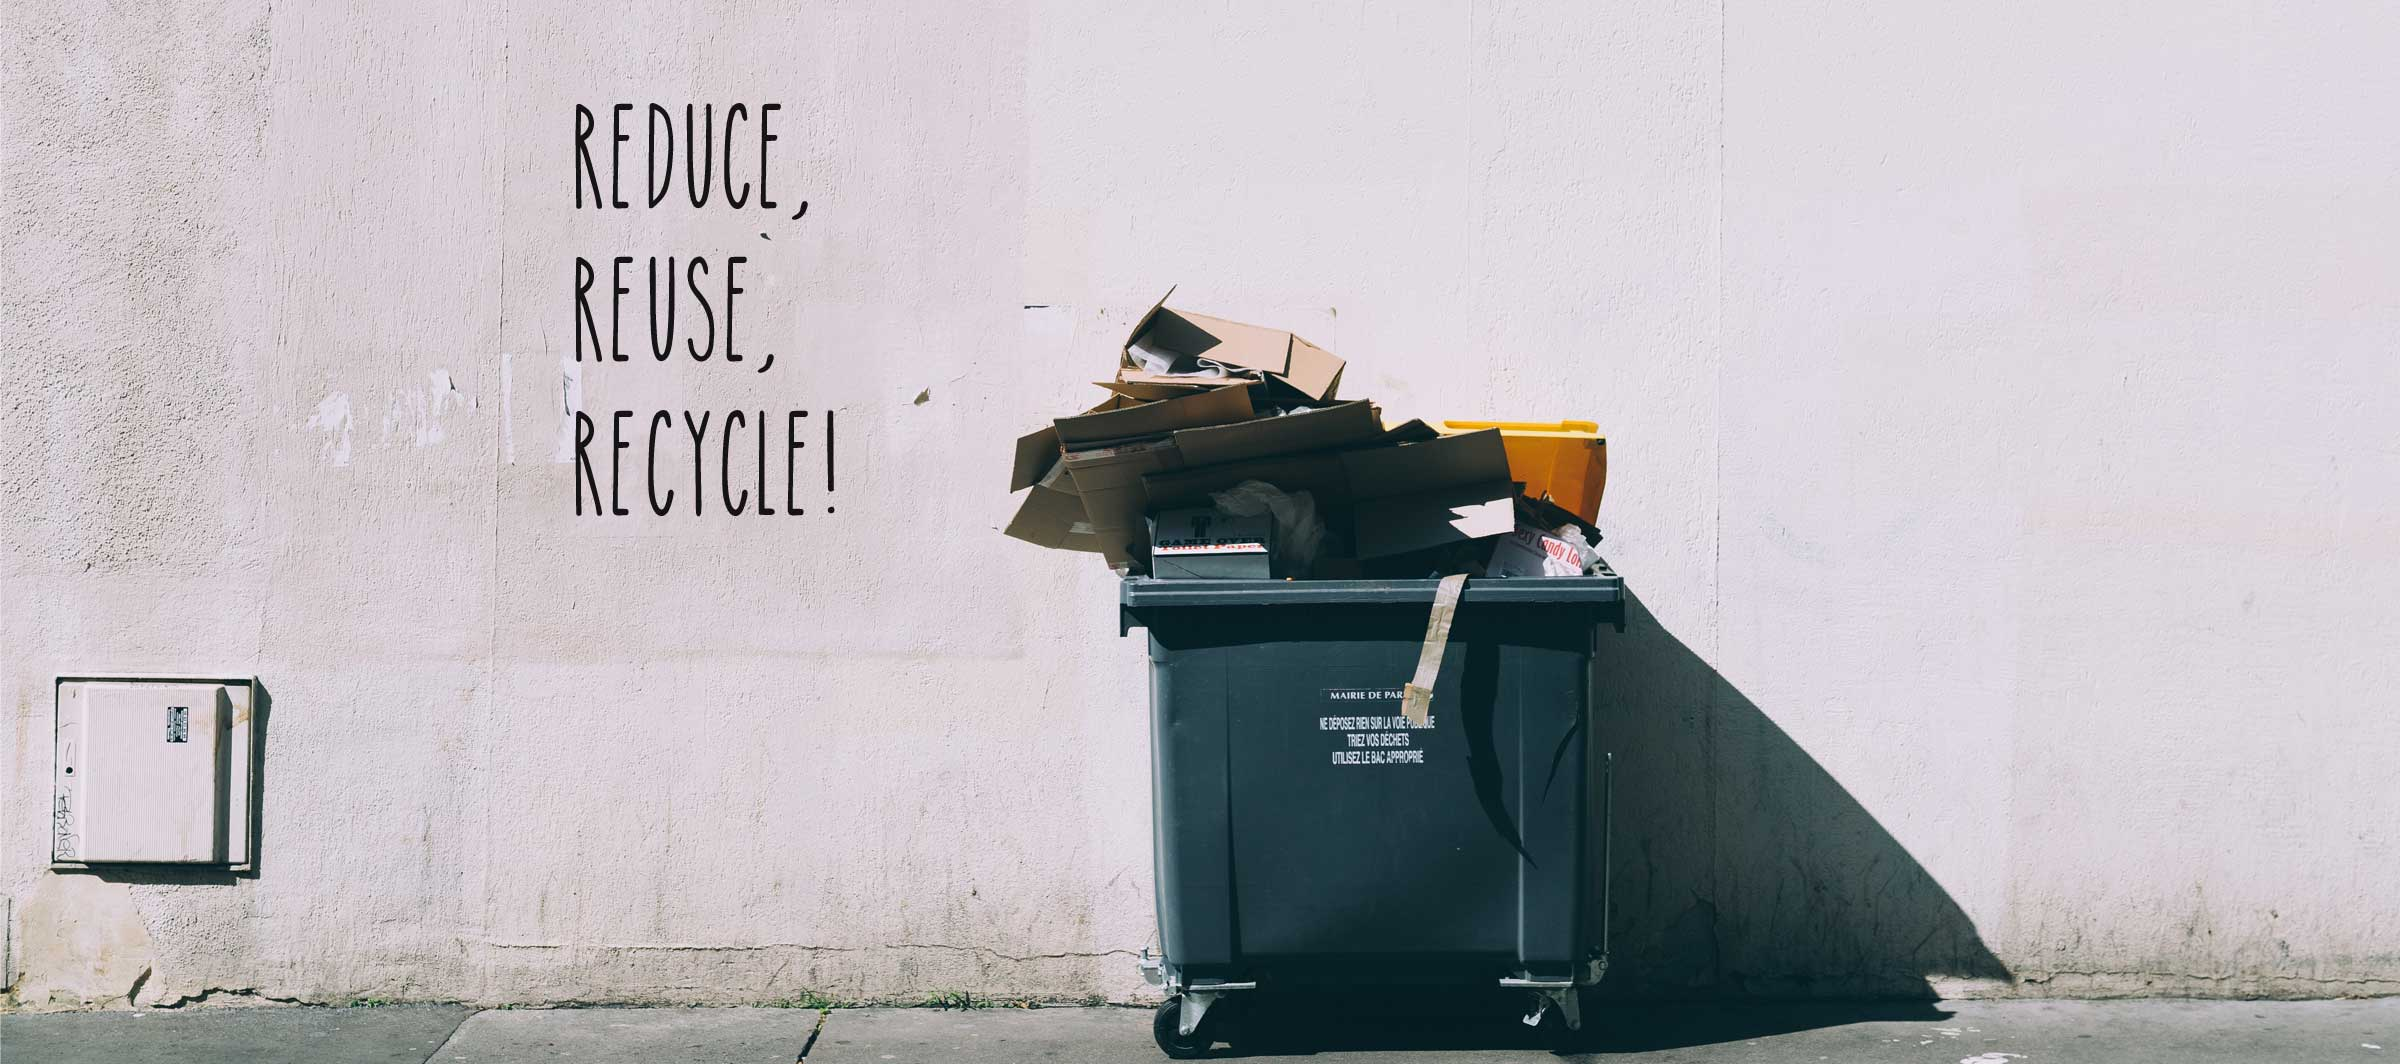 Reduce, reuse, recycling!